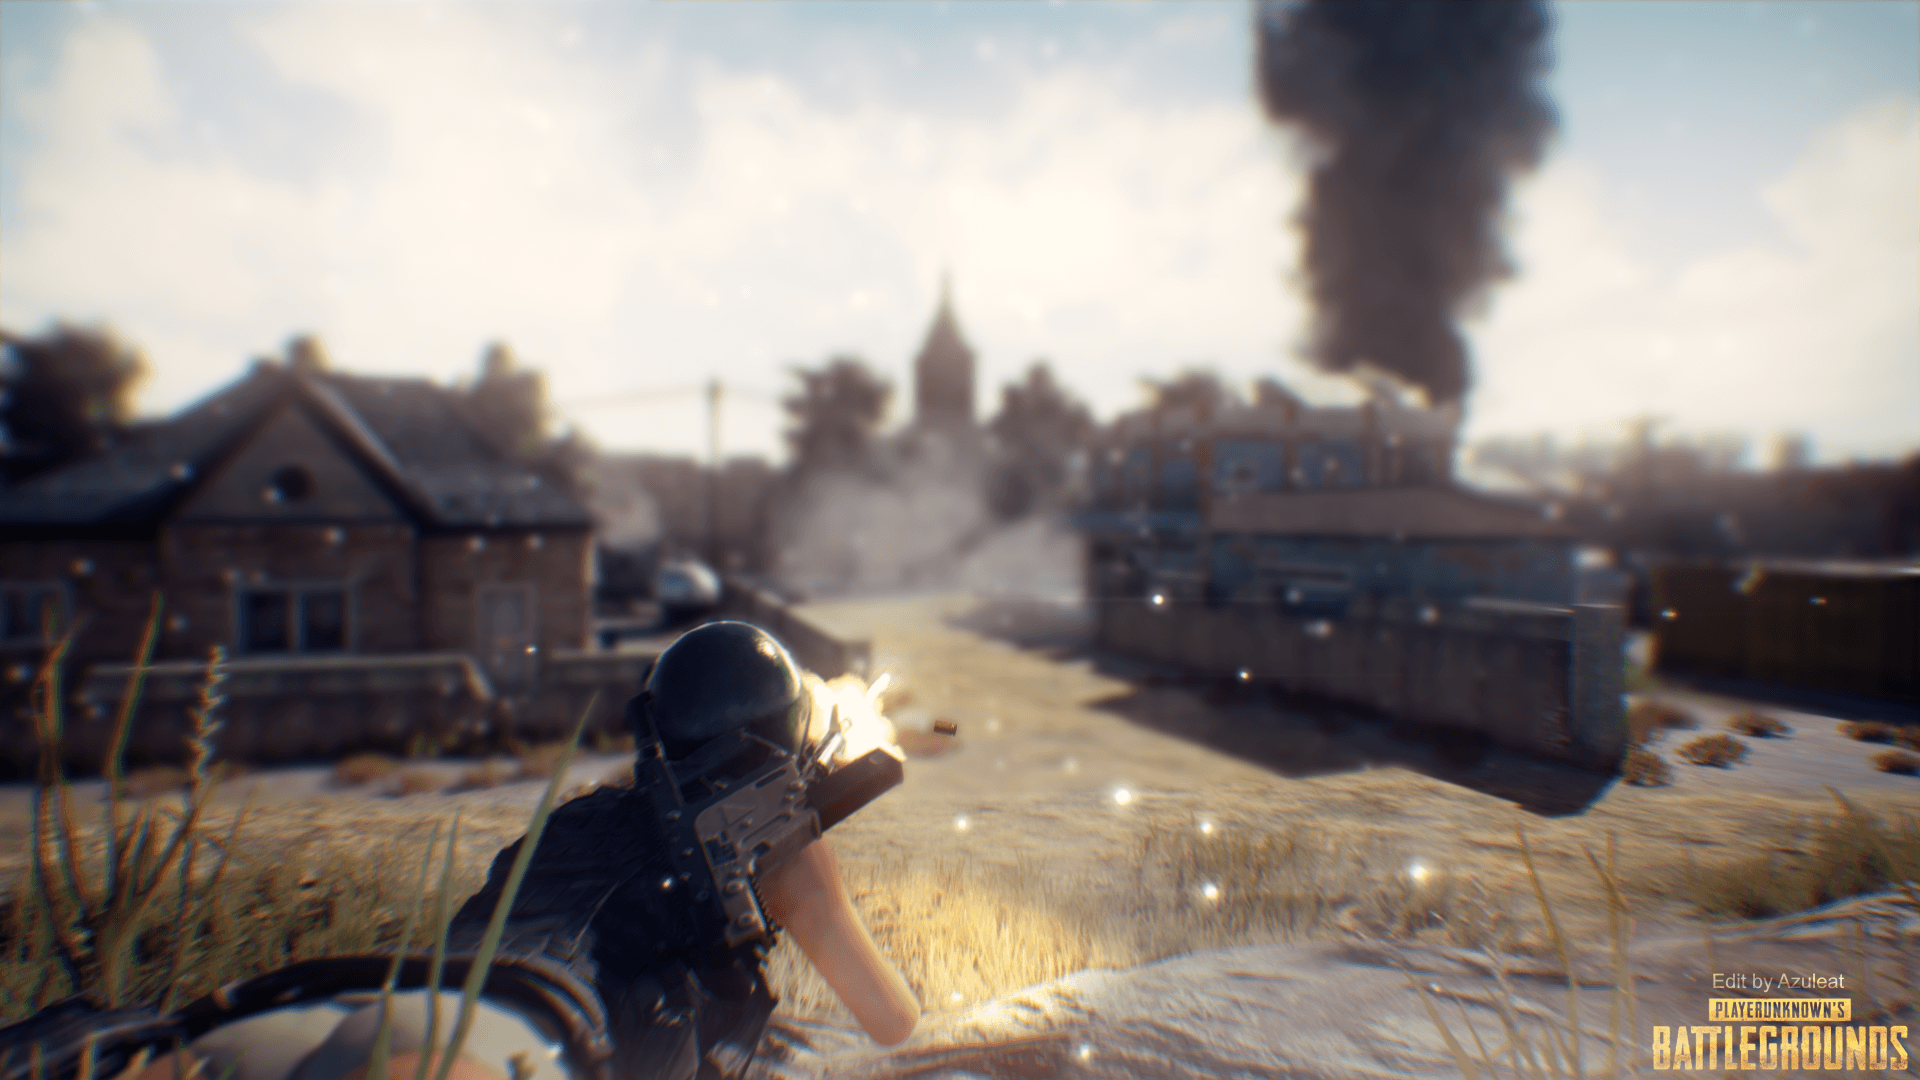 Pubg Wallpaper Themes: PUBG 4K Wallpapers